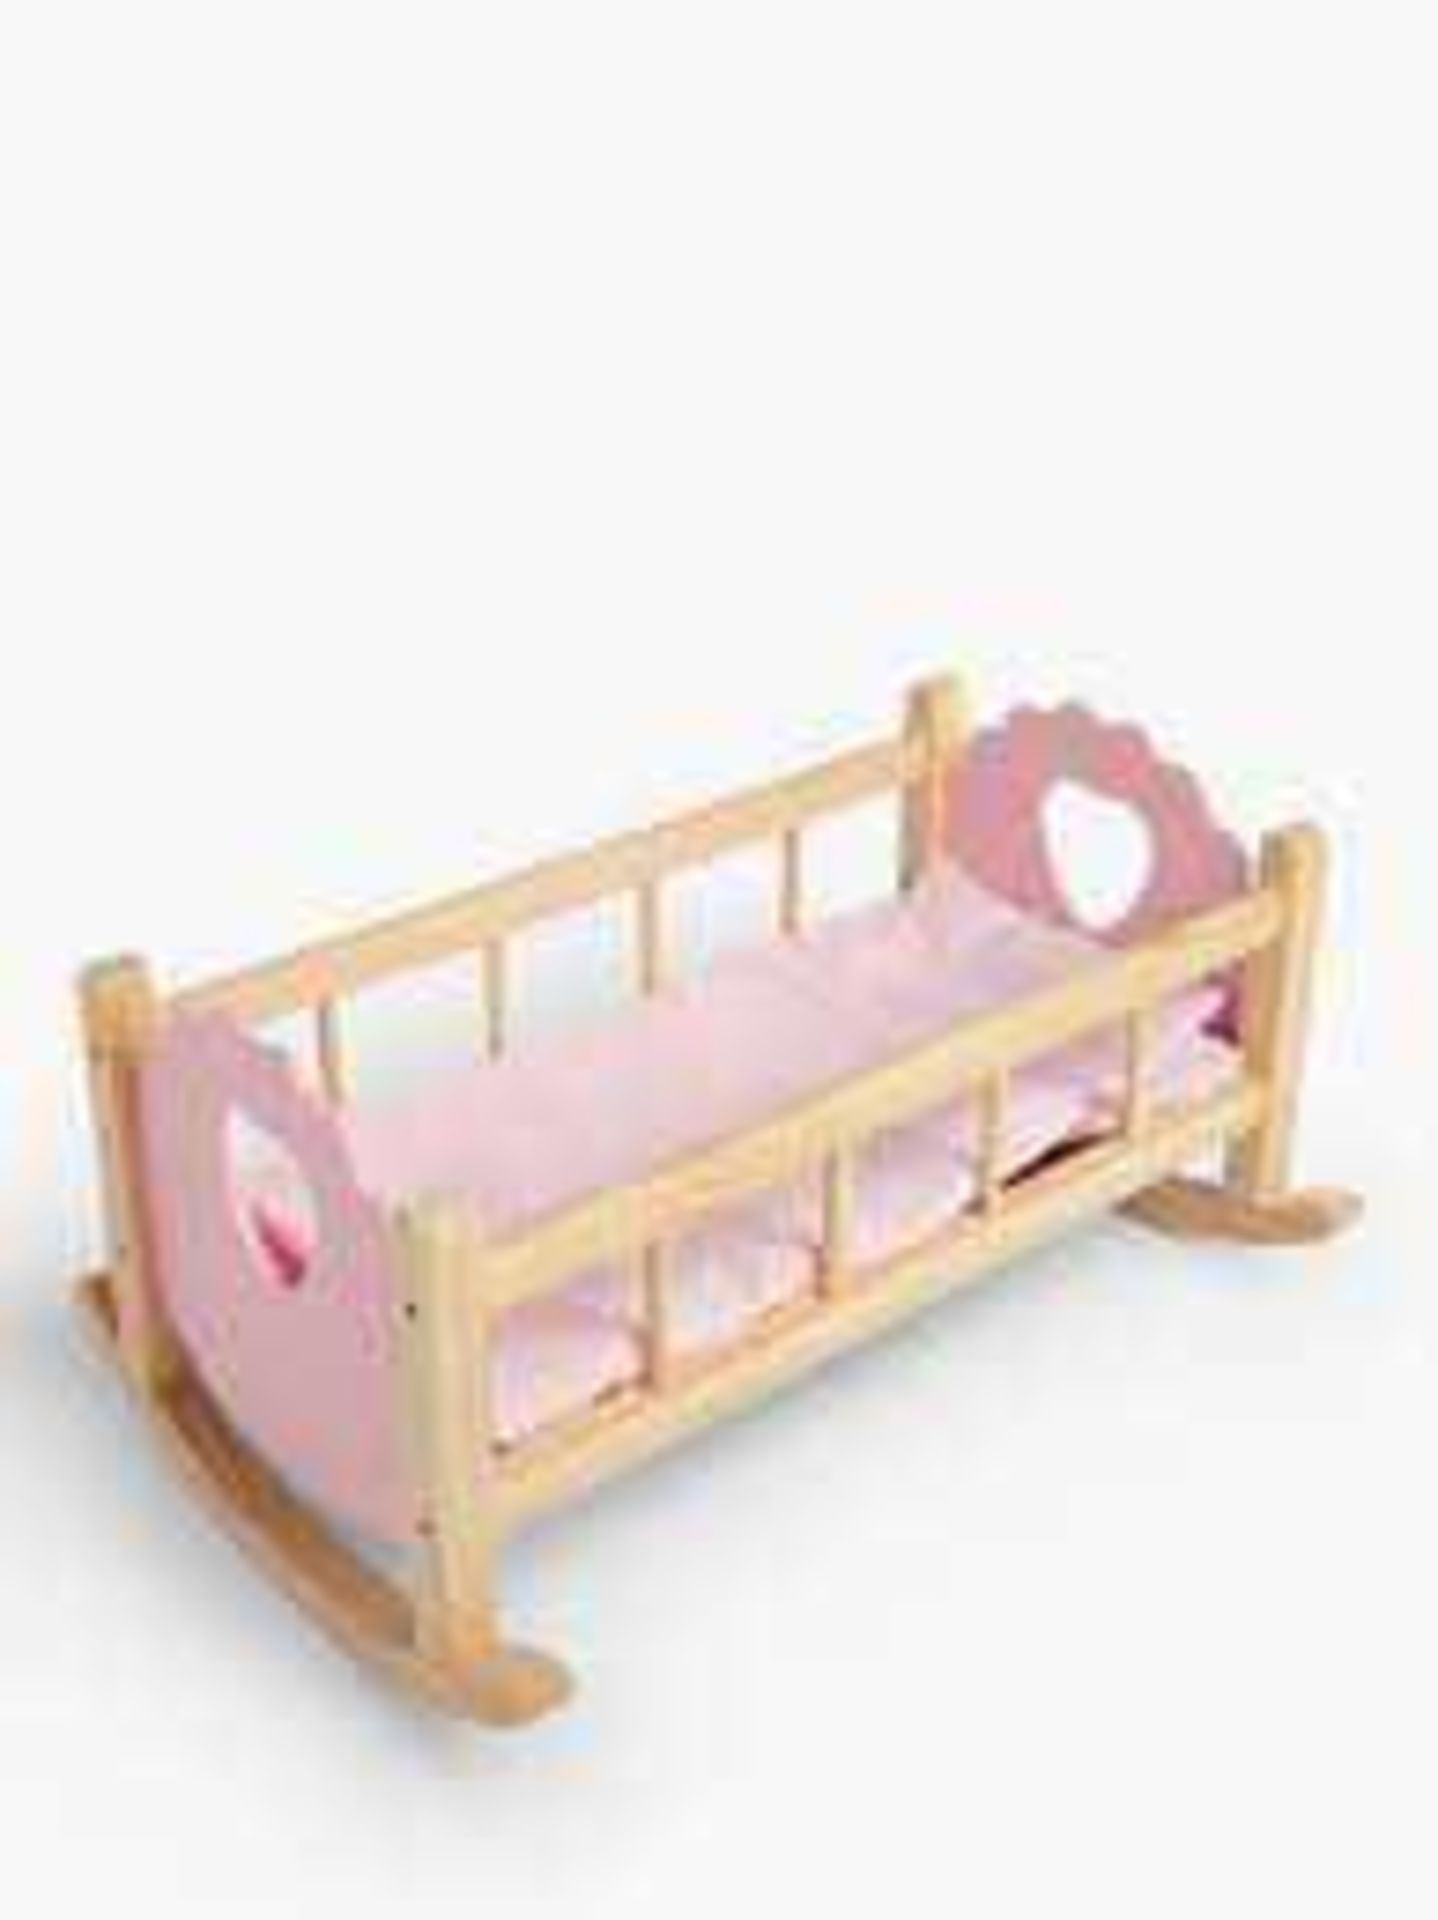 RRP £30 Each Assorted Boxed John Lewis Girls Toys To Include Interactive Baby Doll Wooden Rocking Cr - Image 2 of 3